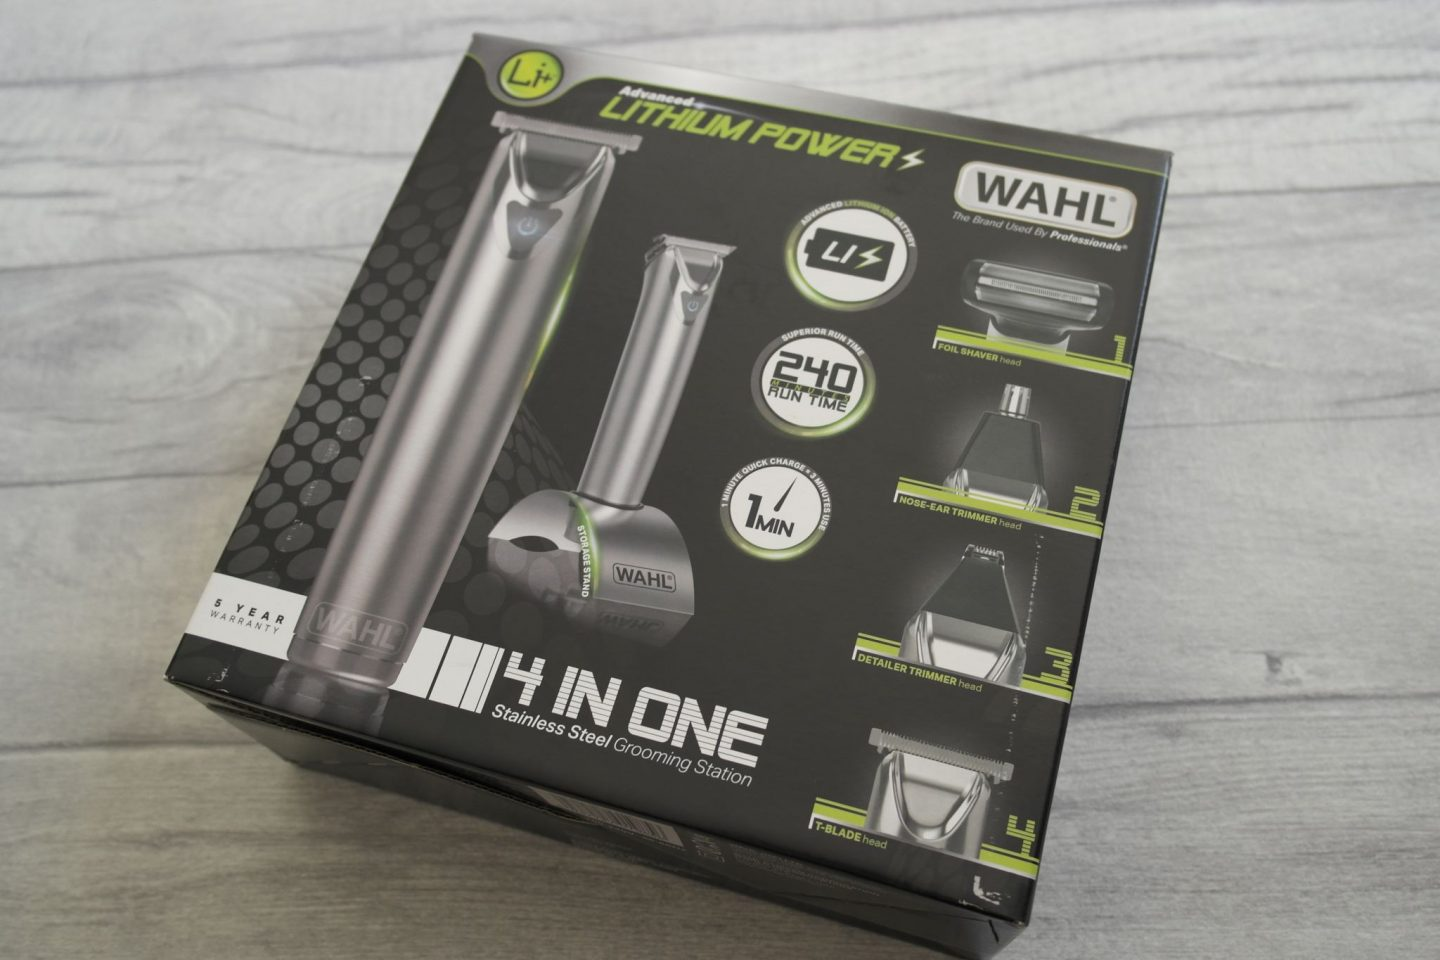 Wahl 4-in-1 Grooming Station